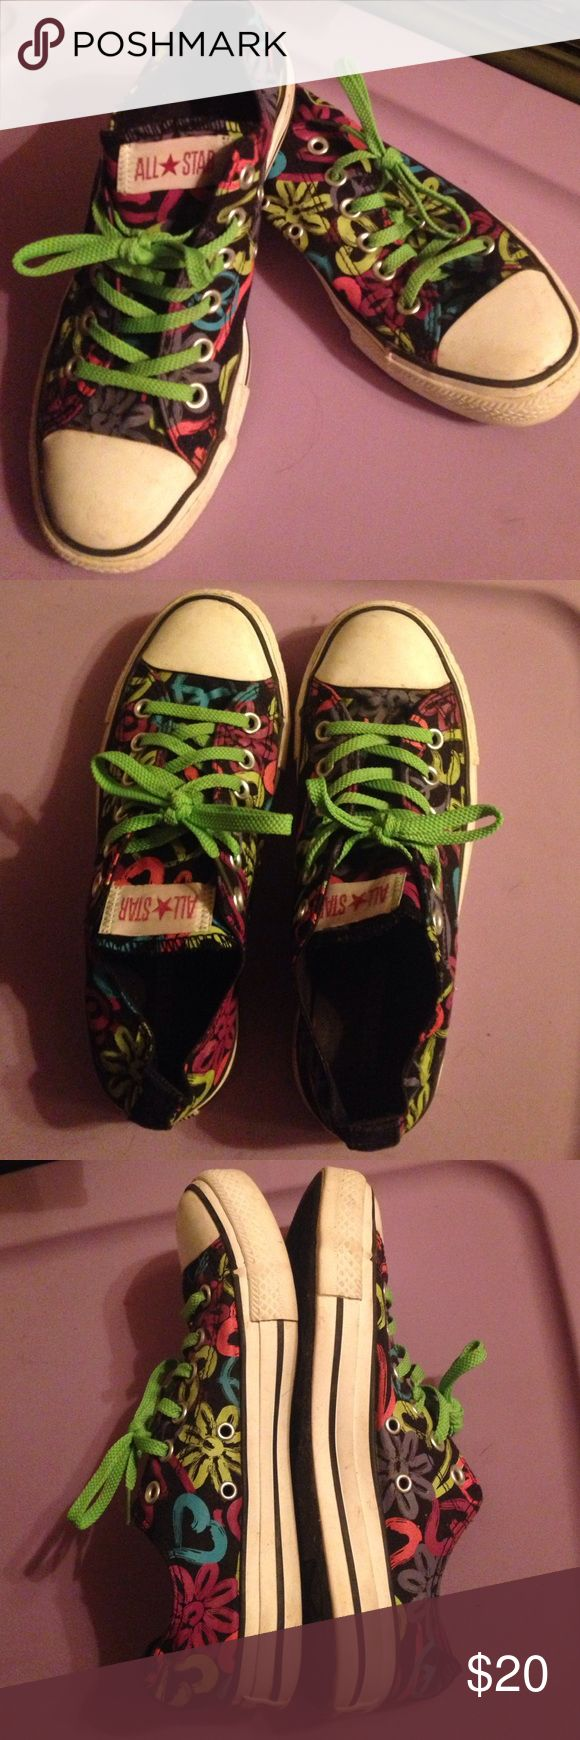 GENTLY WORN RARE Floral Patterned Neon Converse Gently worn. Rubber around shoe and top of toes shoe signs of wear and light scuff marks common with used converses. Soles of shoes shoe little signs of wear. No odors. 8/10 condition. Converse Shoes Sneakers